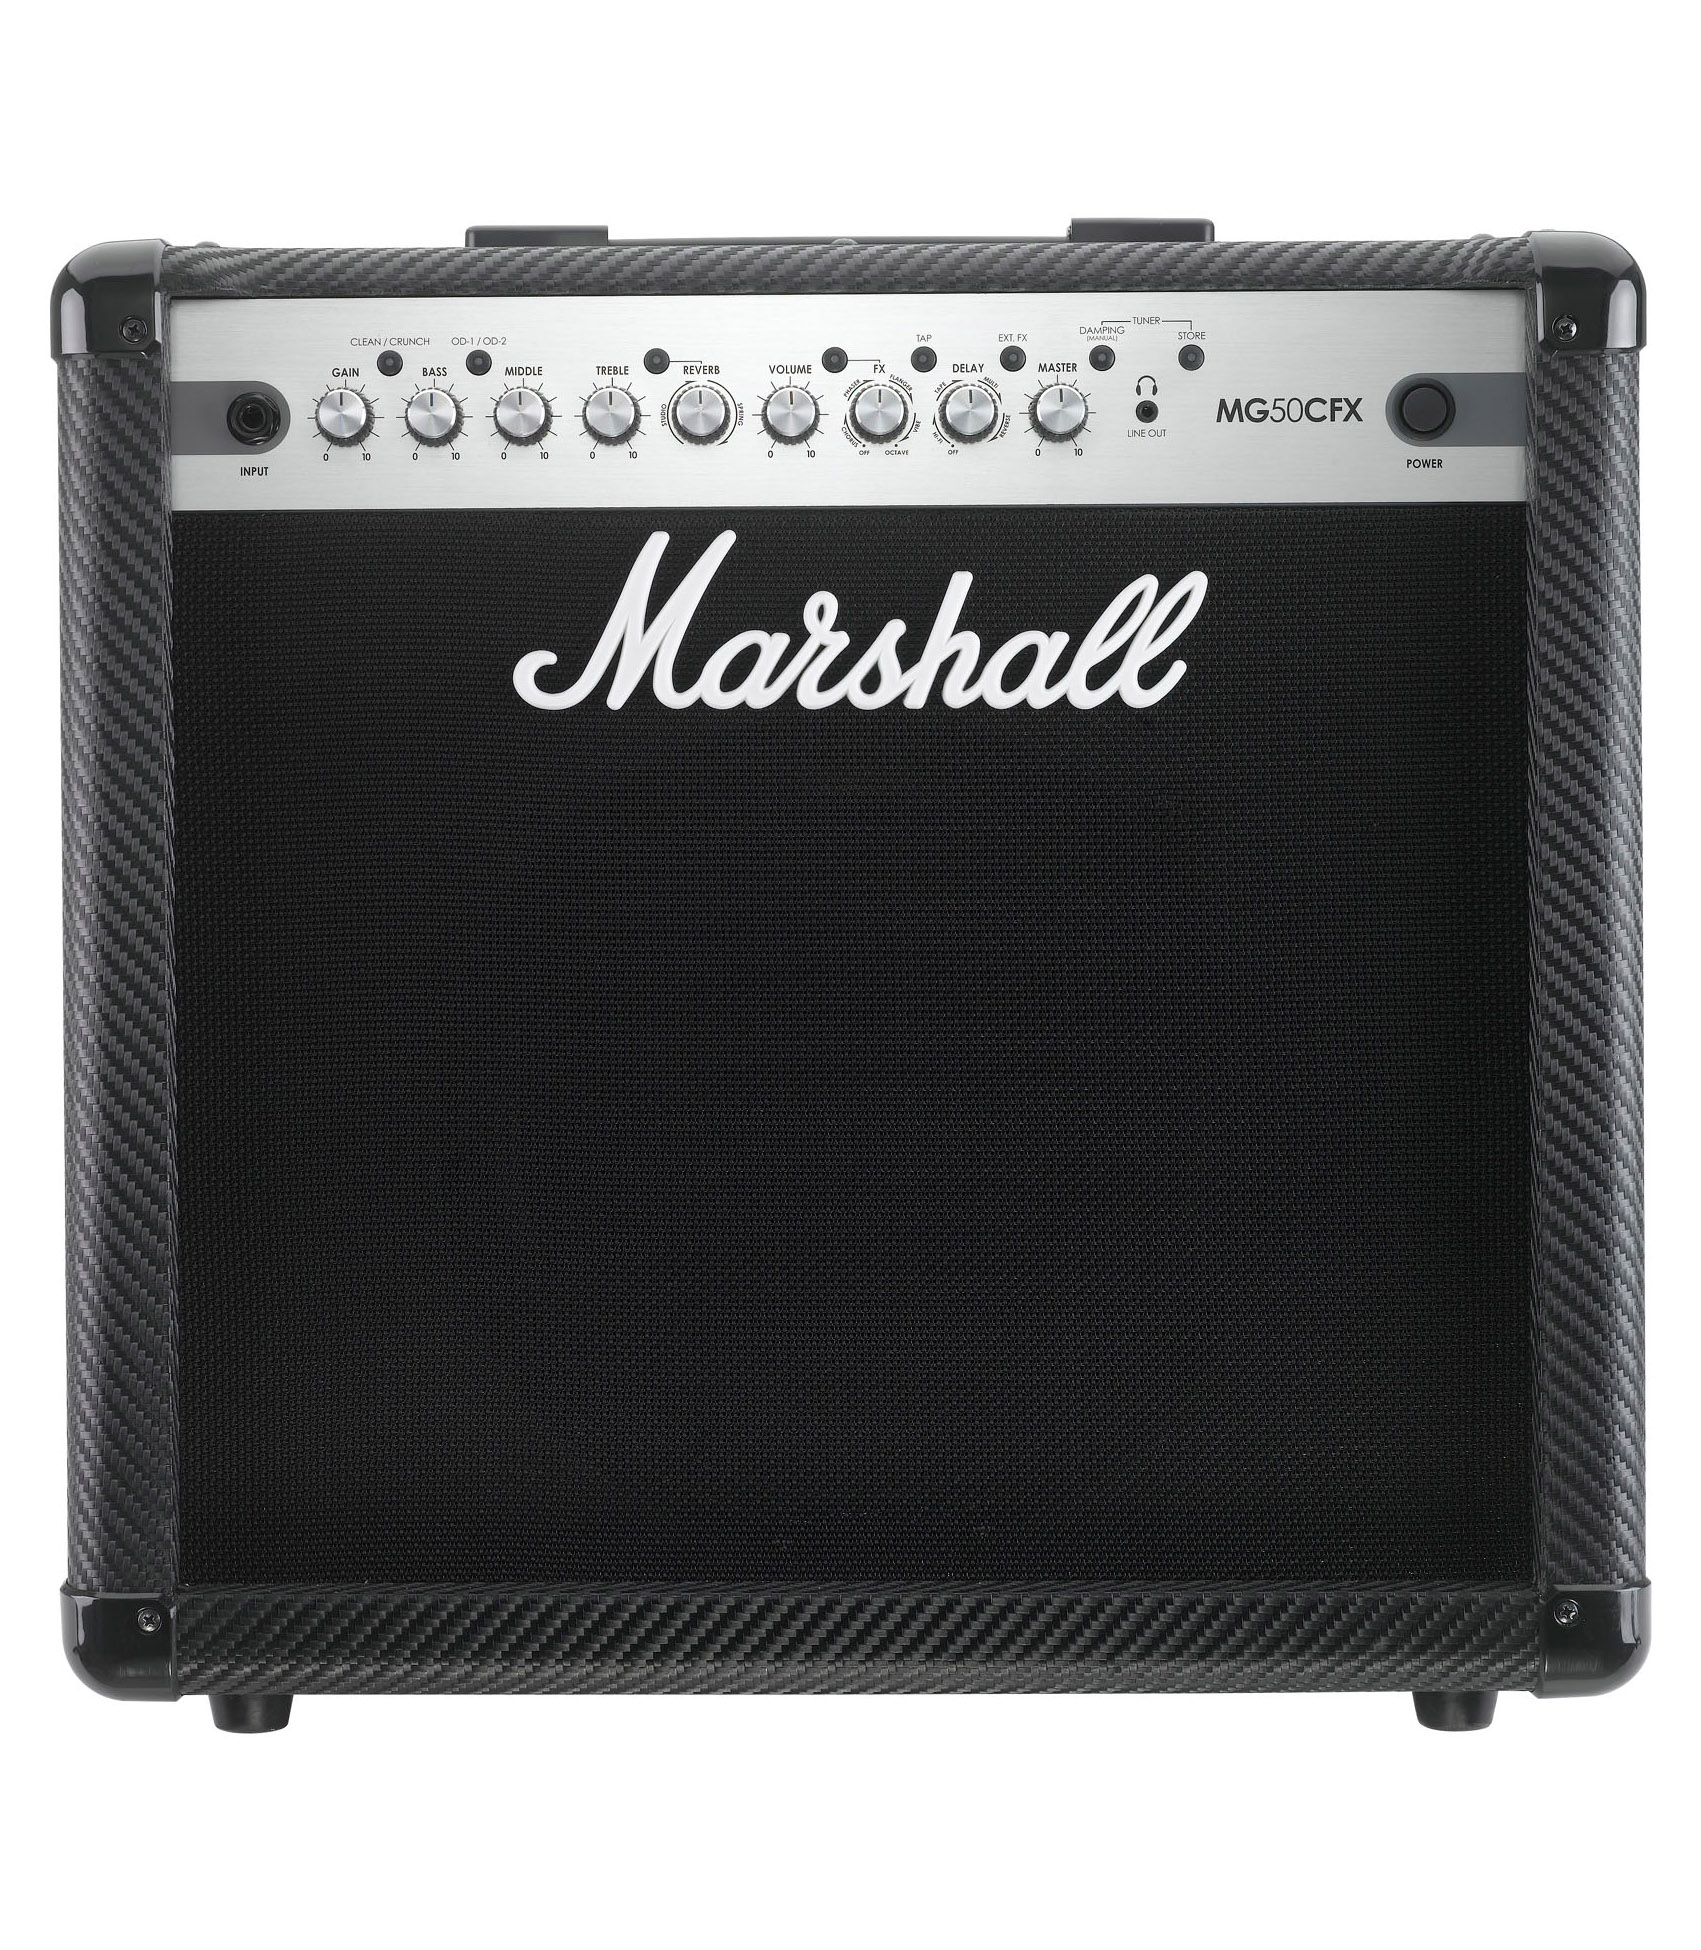 Buy Marshall - MG50CFX Solid state Guitar Amp 4 Channe